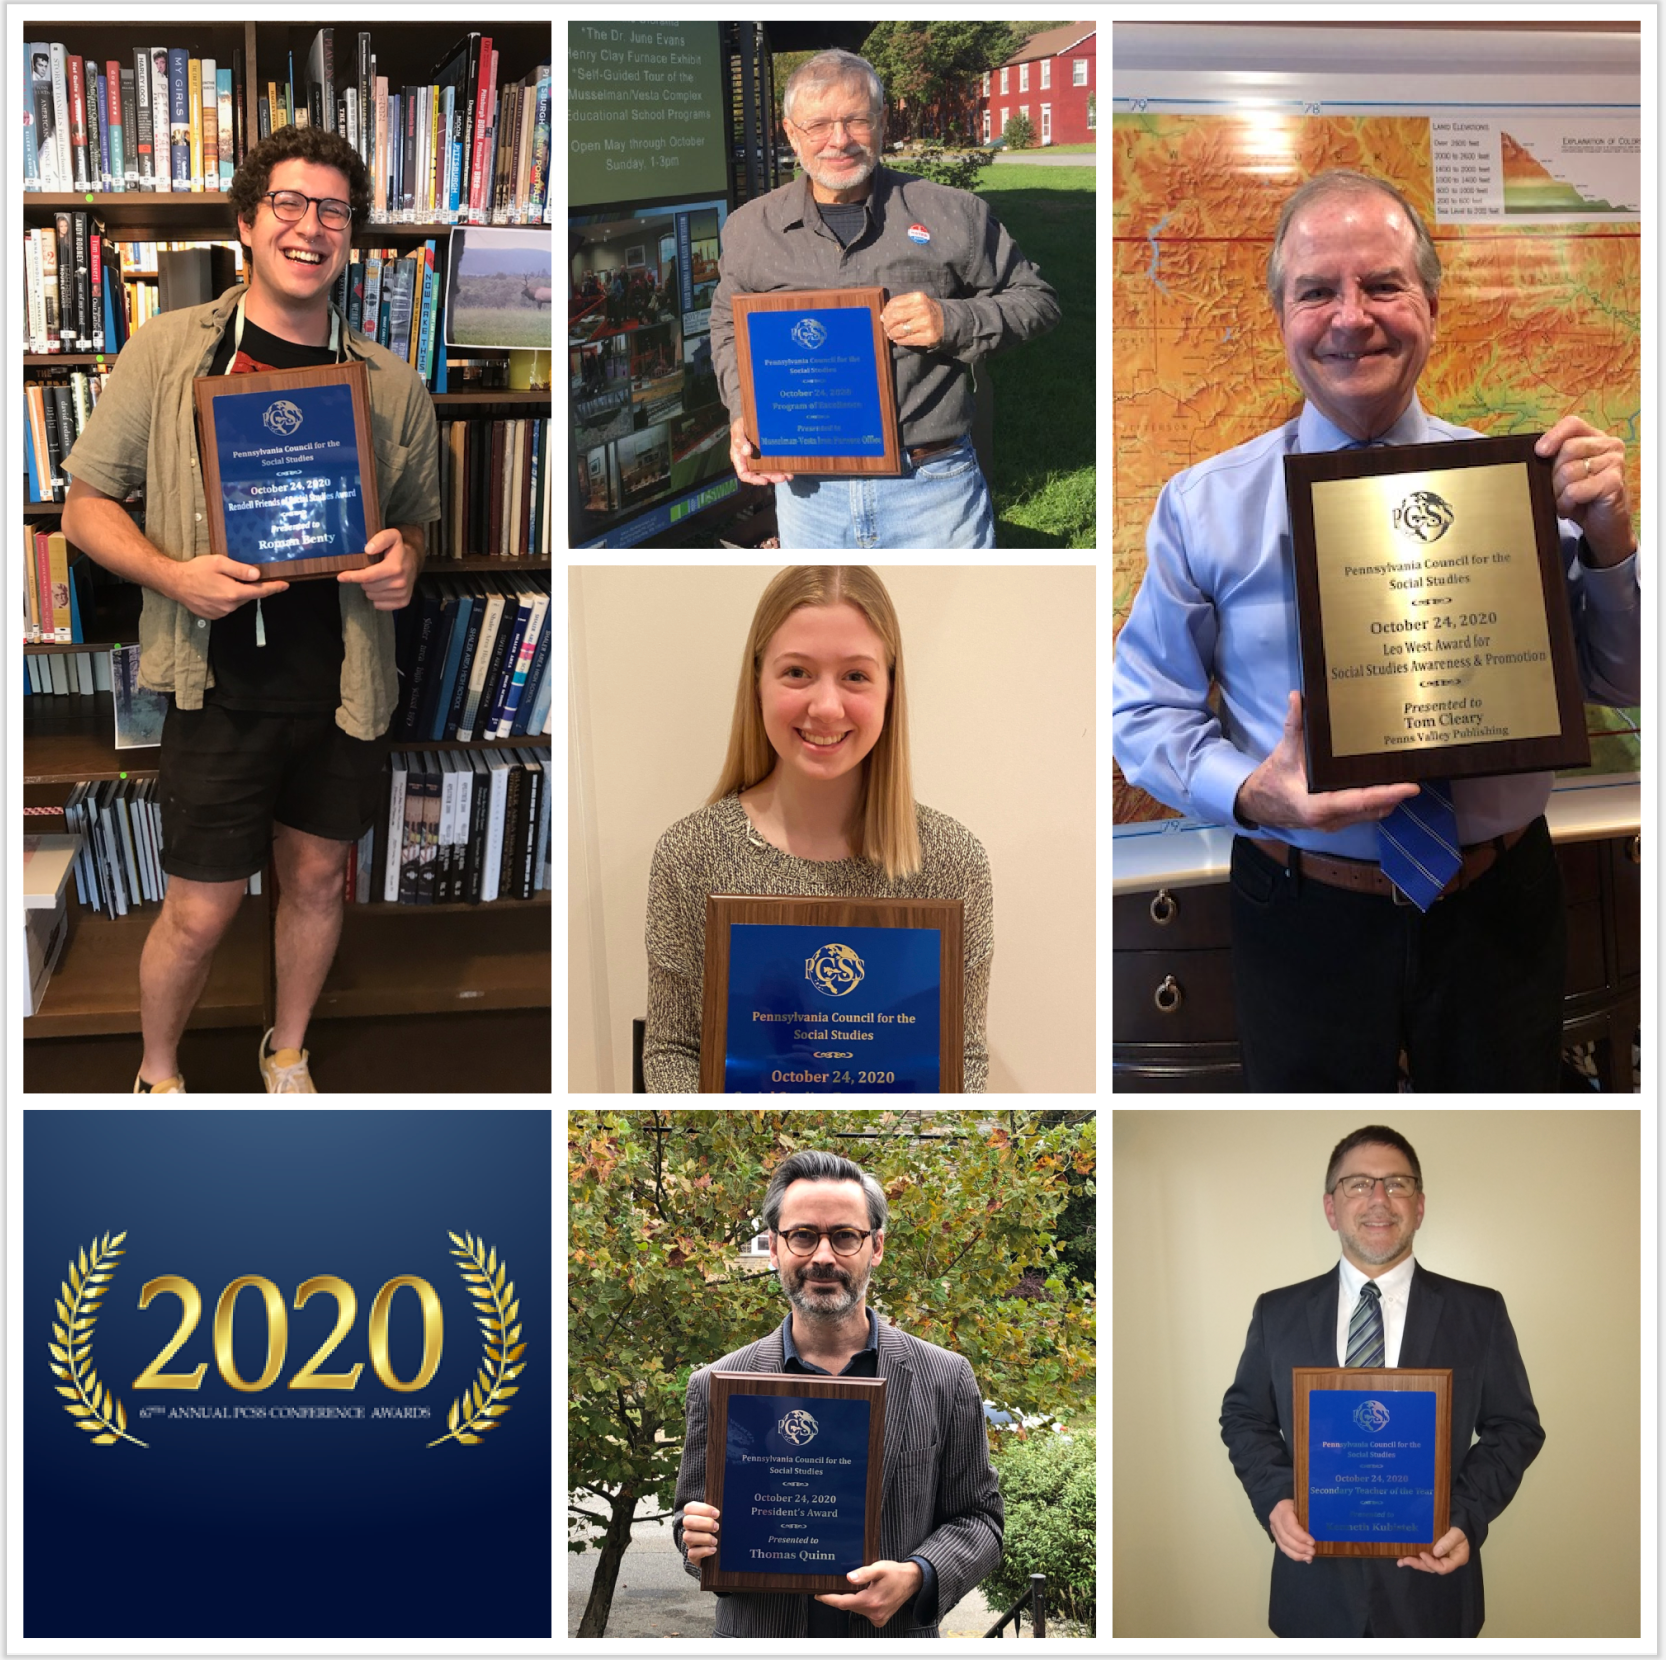 2020 PCSS Conference Award Winners